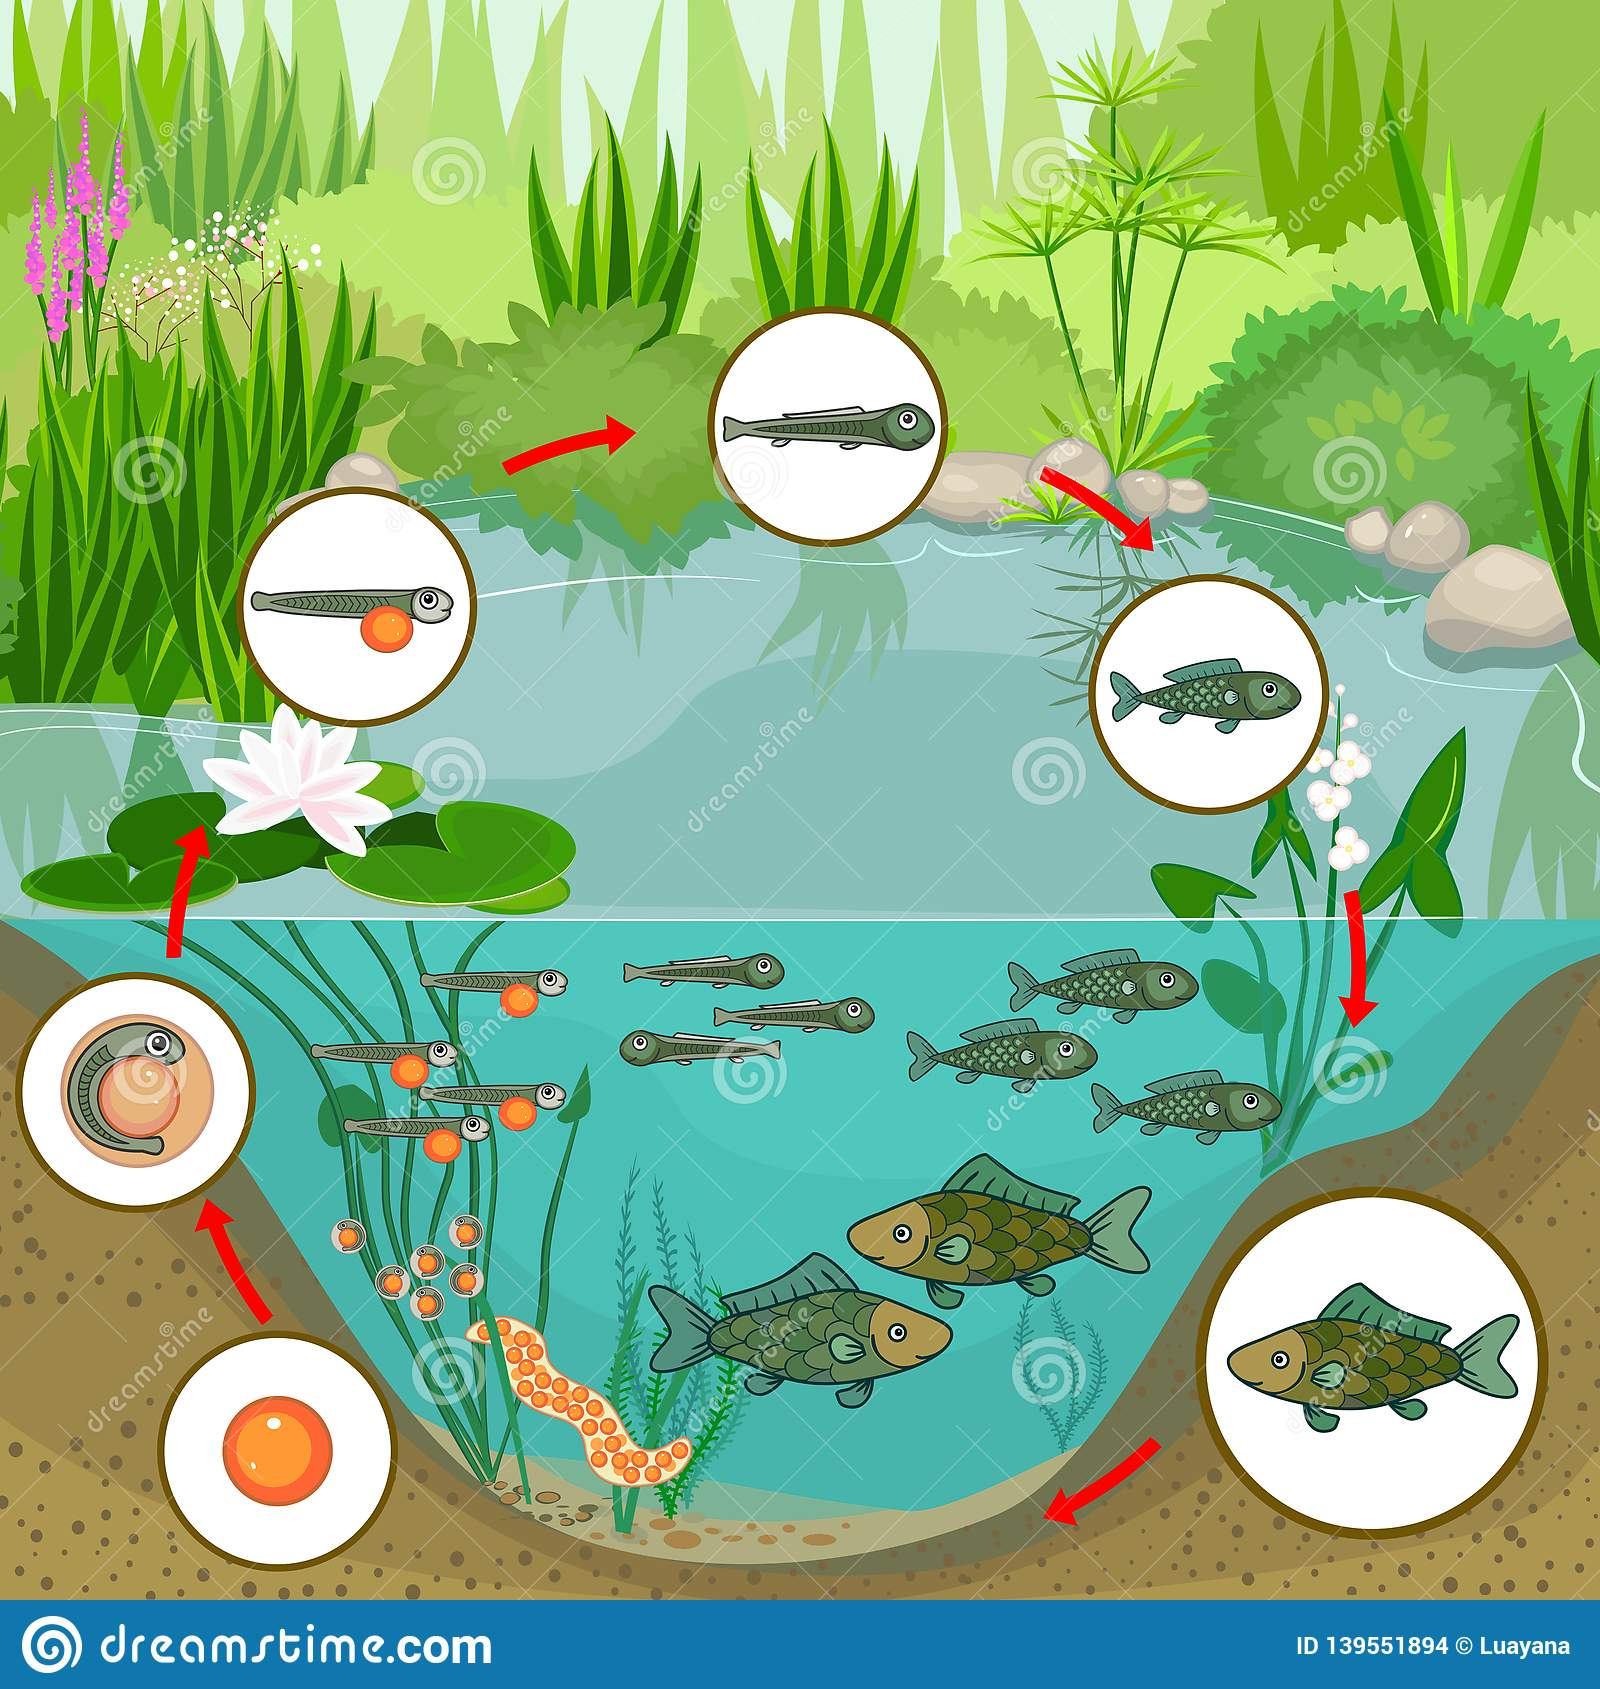 Pond Ecosystem And Life Cycle Of Fish  Sequence Of Stages Of Development Of Fish From Egg To